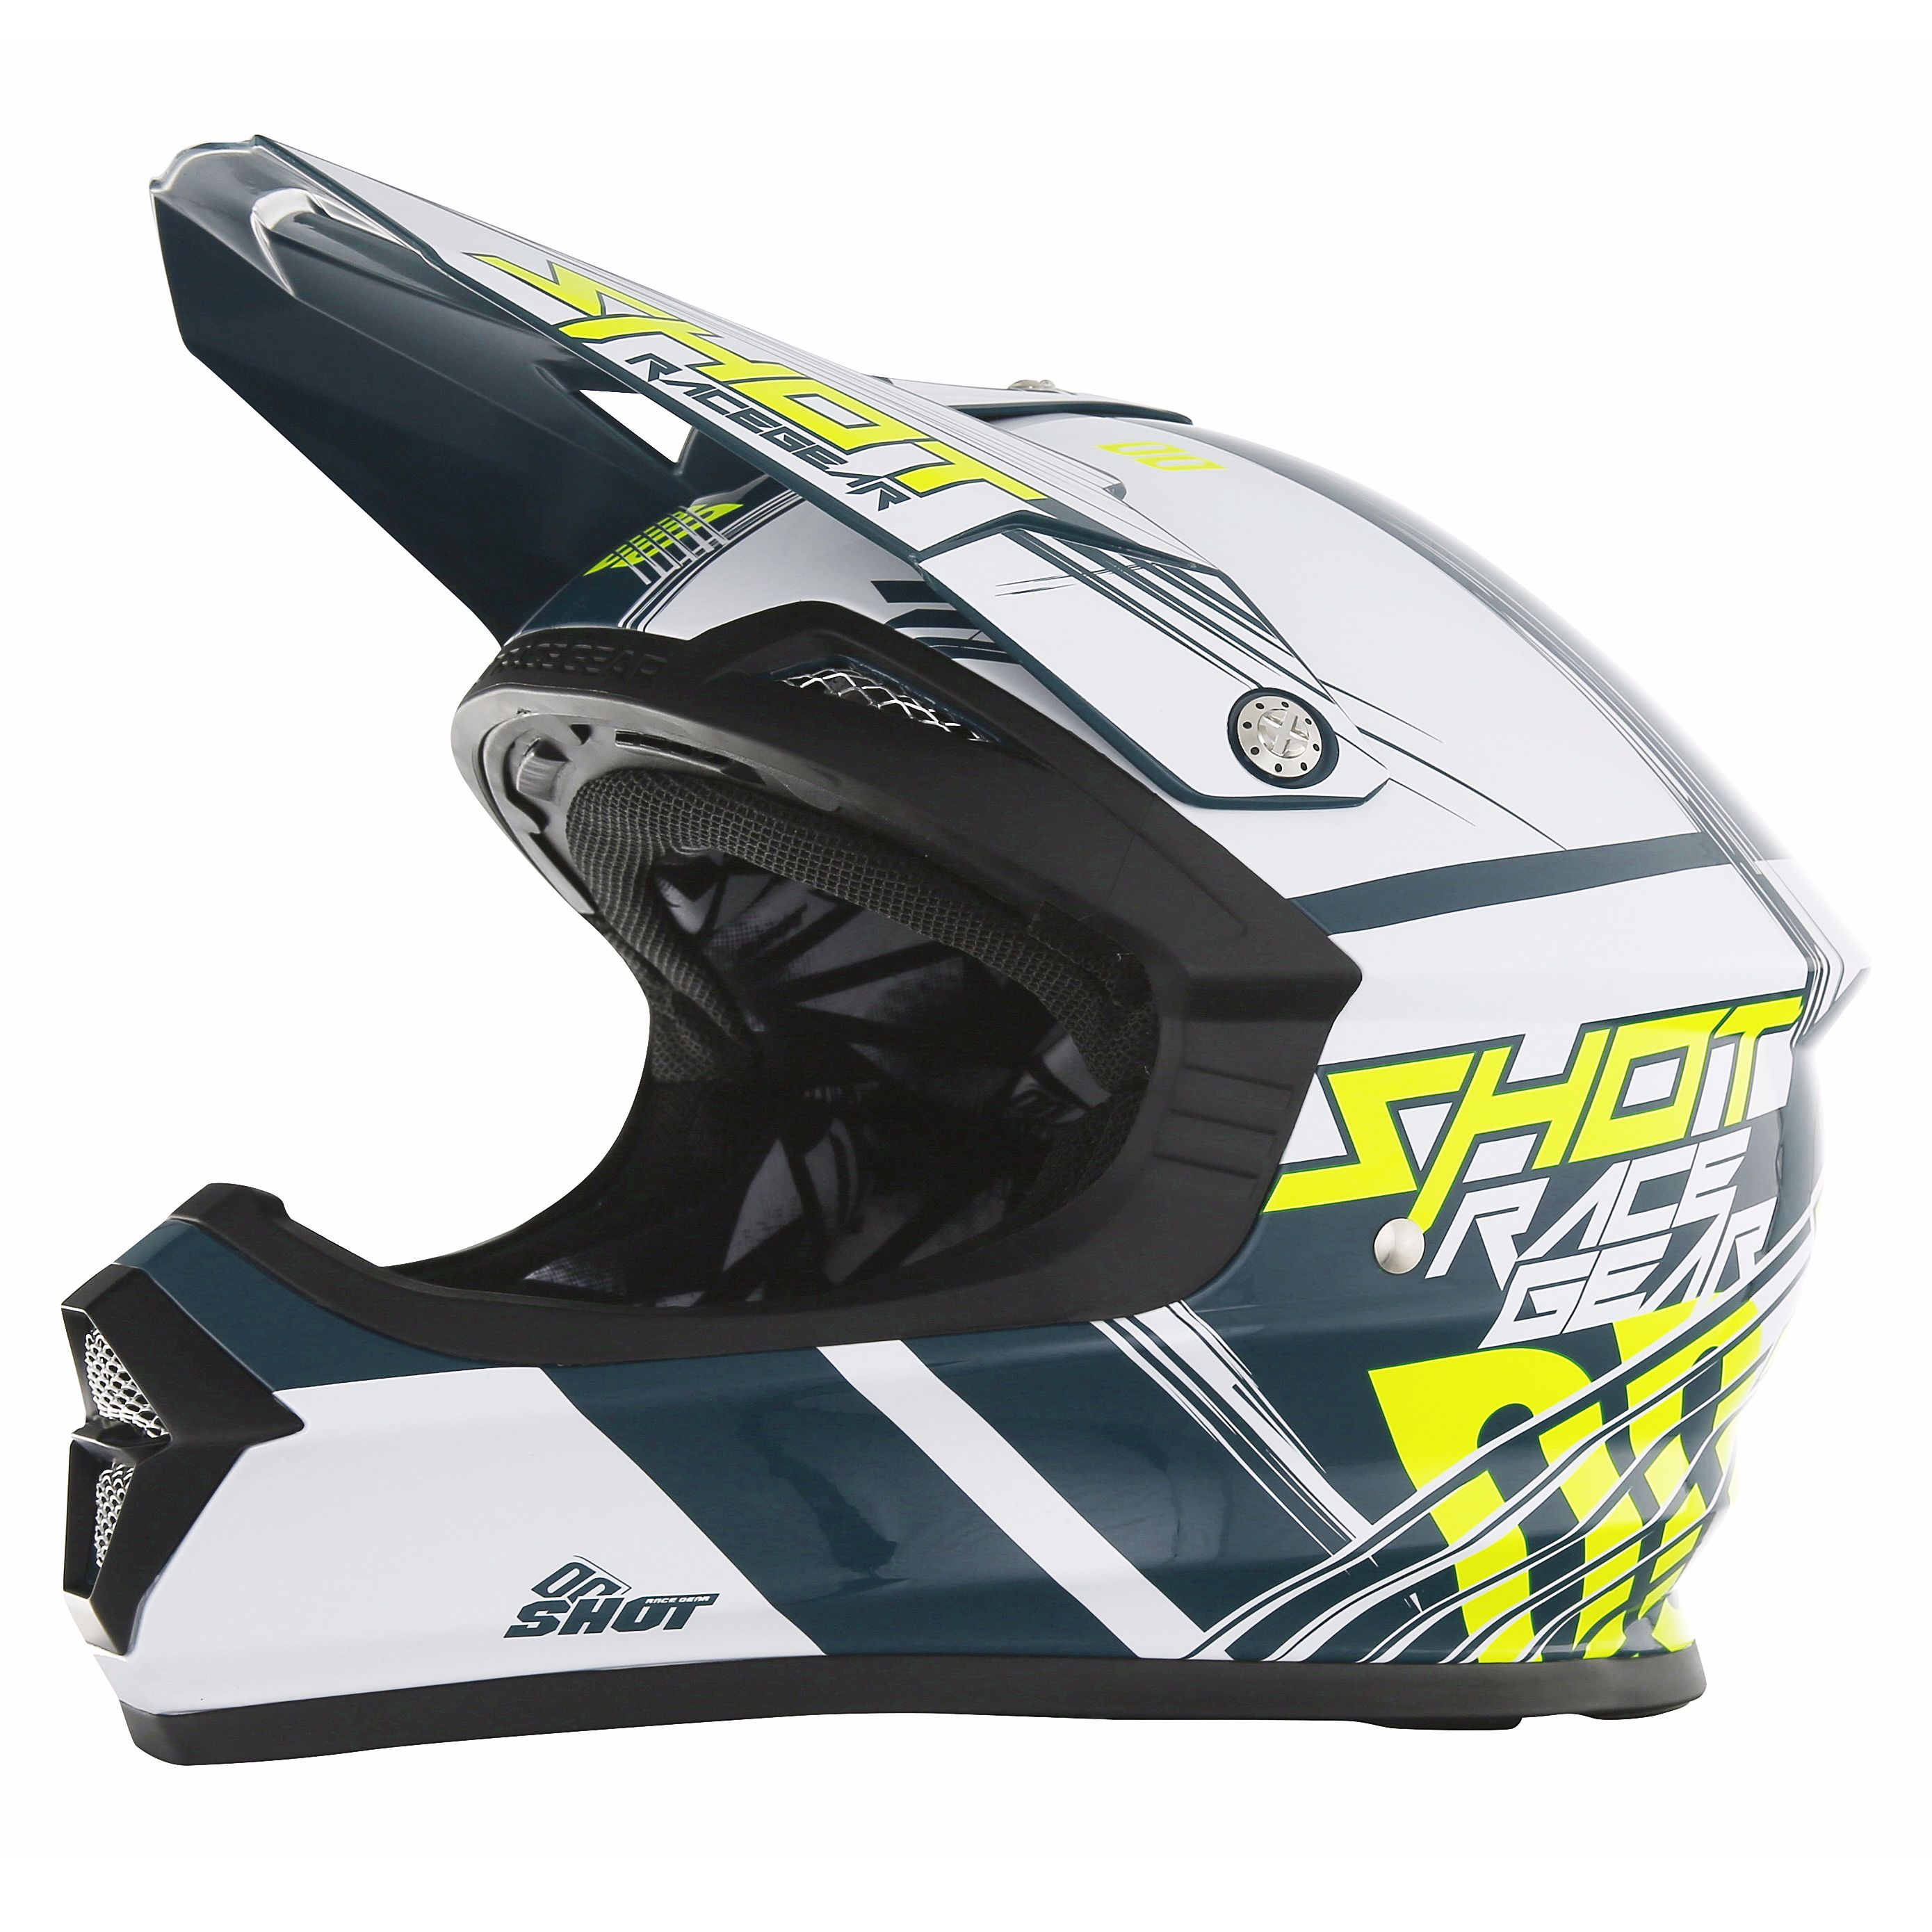 Casque cross Shot destockage FURIOUS CLAW TEAL BLEU NEON JAUNE  2017